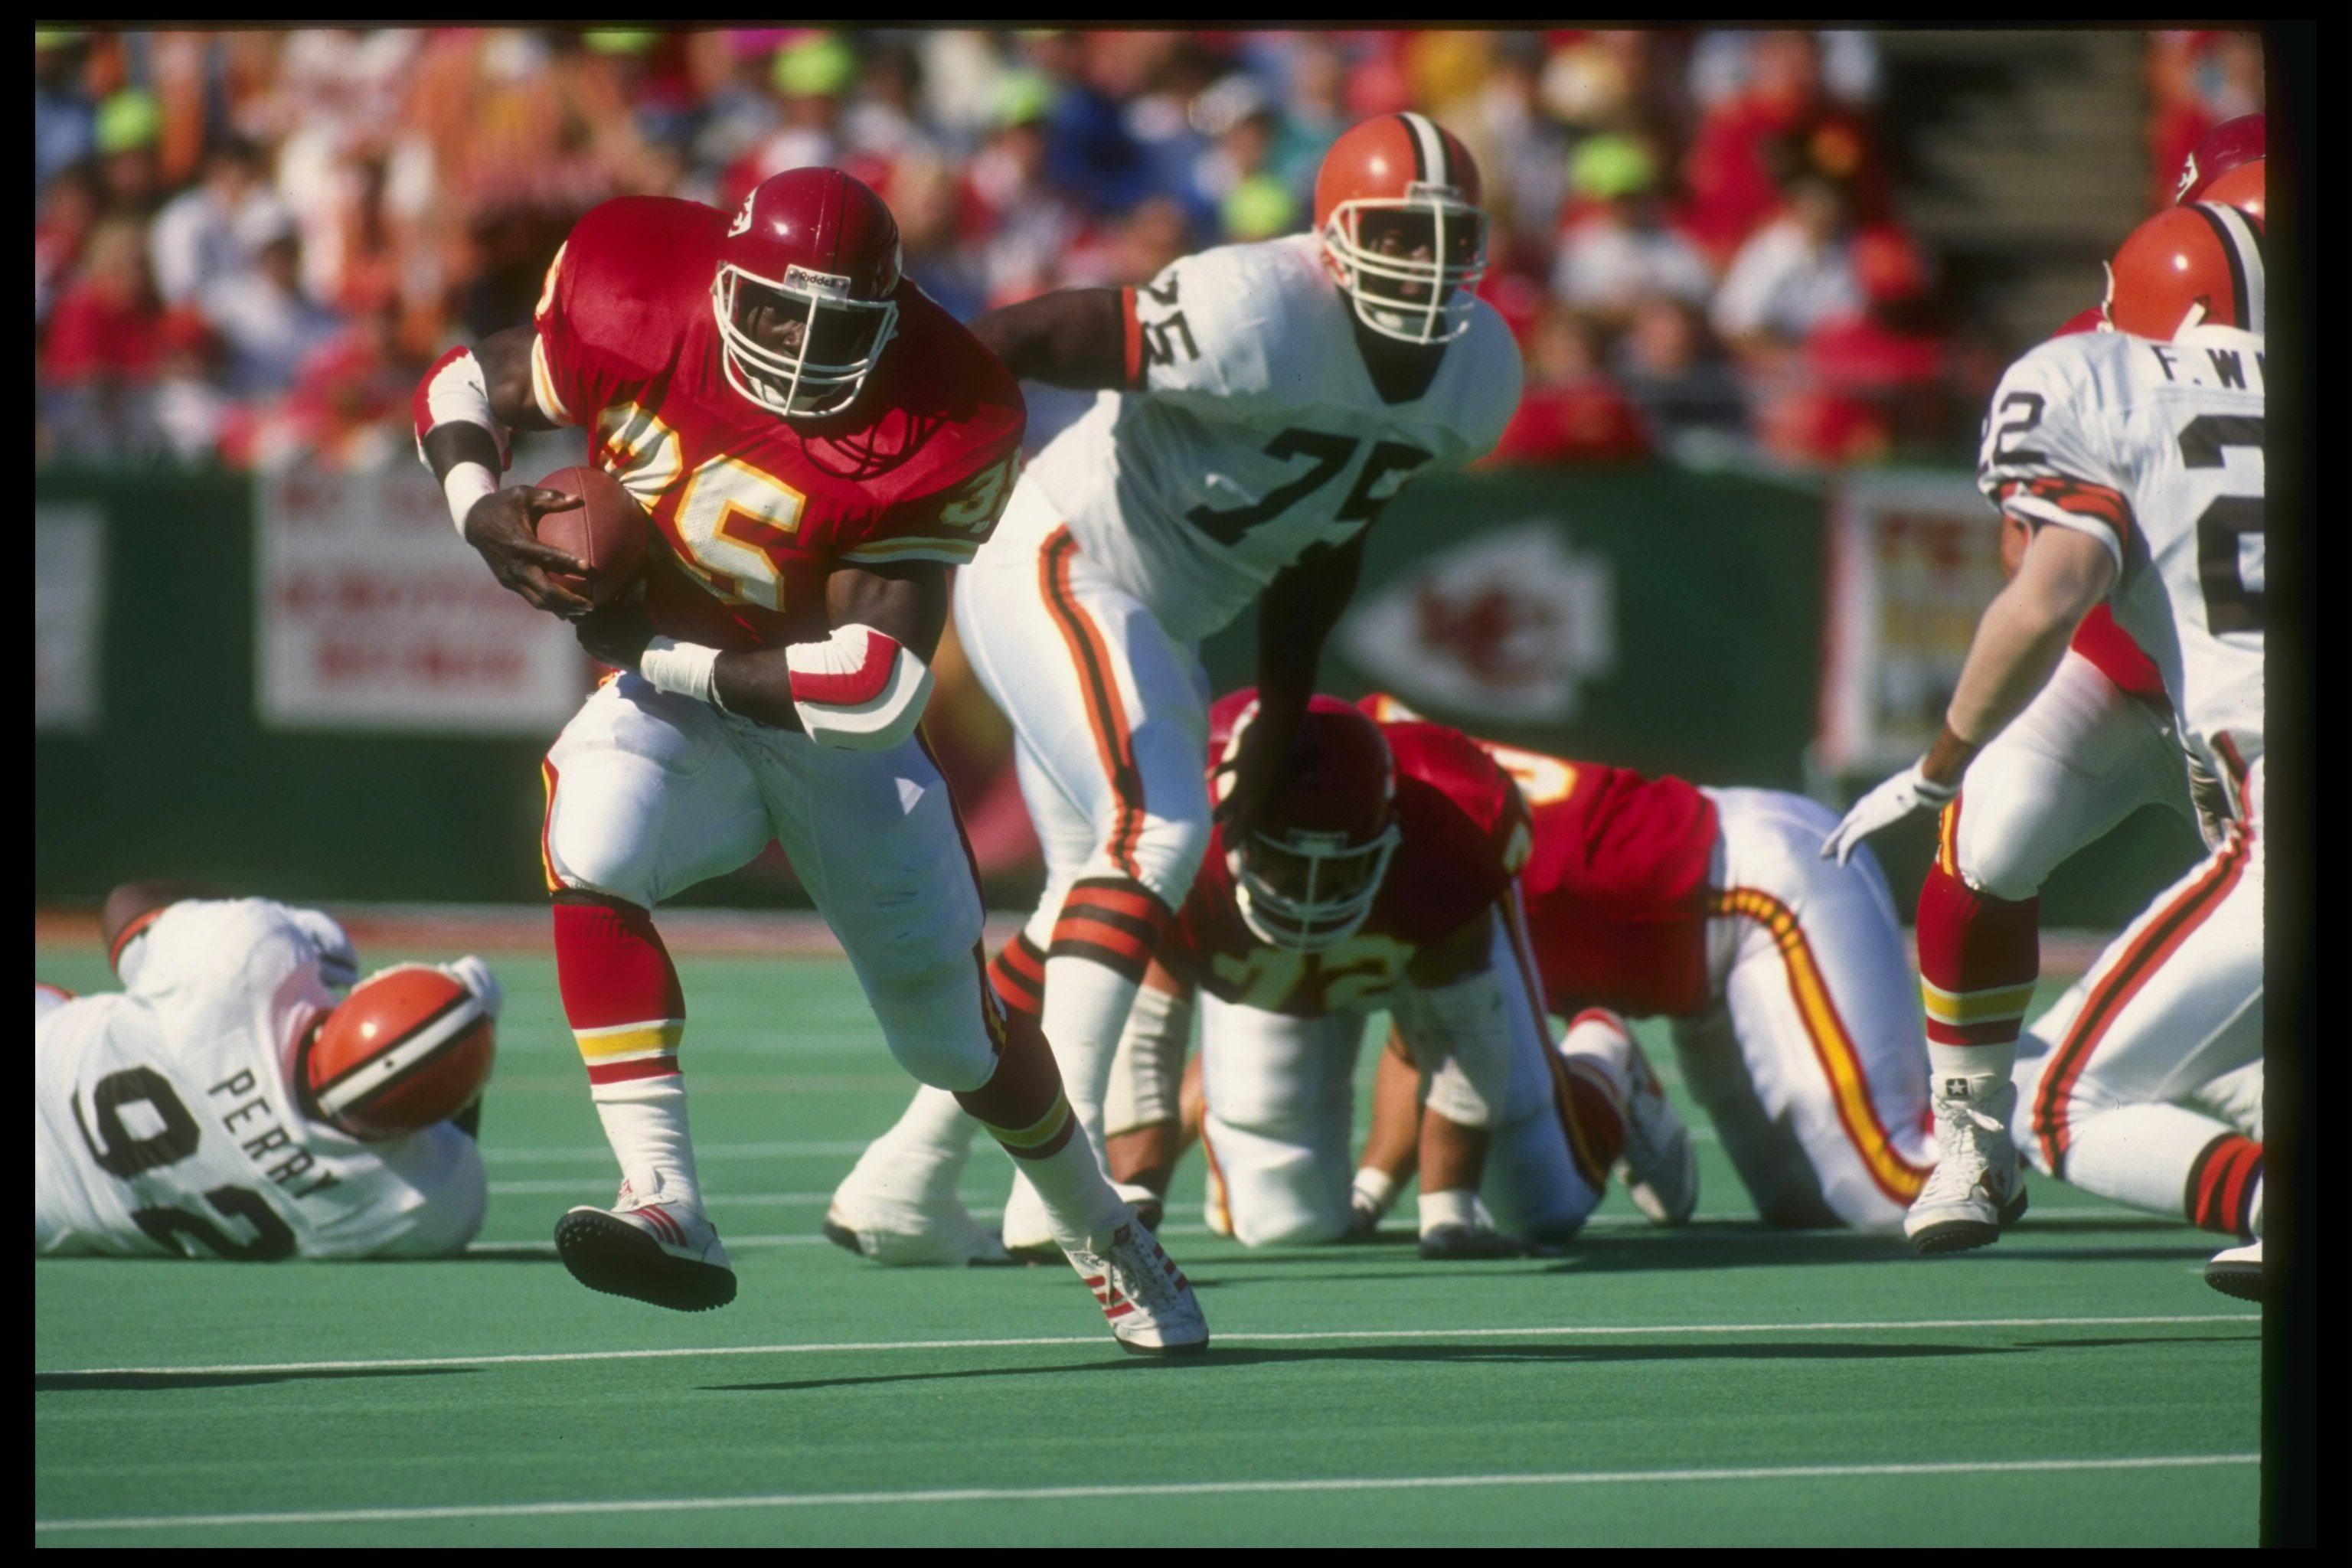 30 Sep 1990: Running back Christian Okoye of the Kansas City Chiefs (left) moves the ball during a game against the Cleveland Browns at Arrowhead Stadium in Kansas City, Missouri. The Chiefs won the game, 34-0.